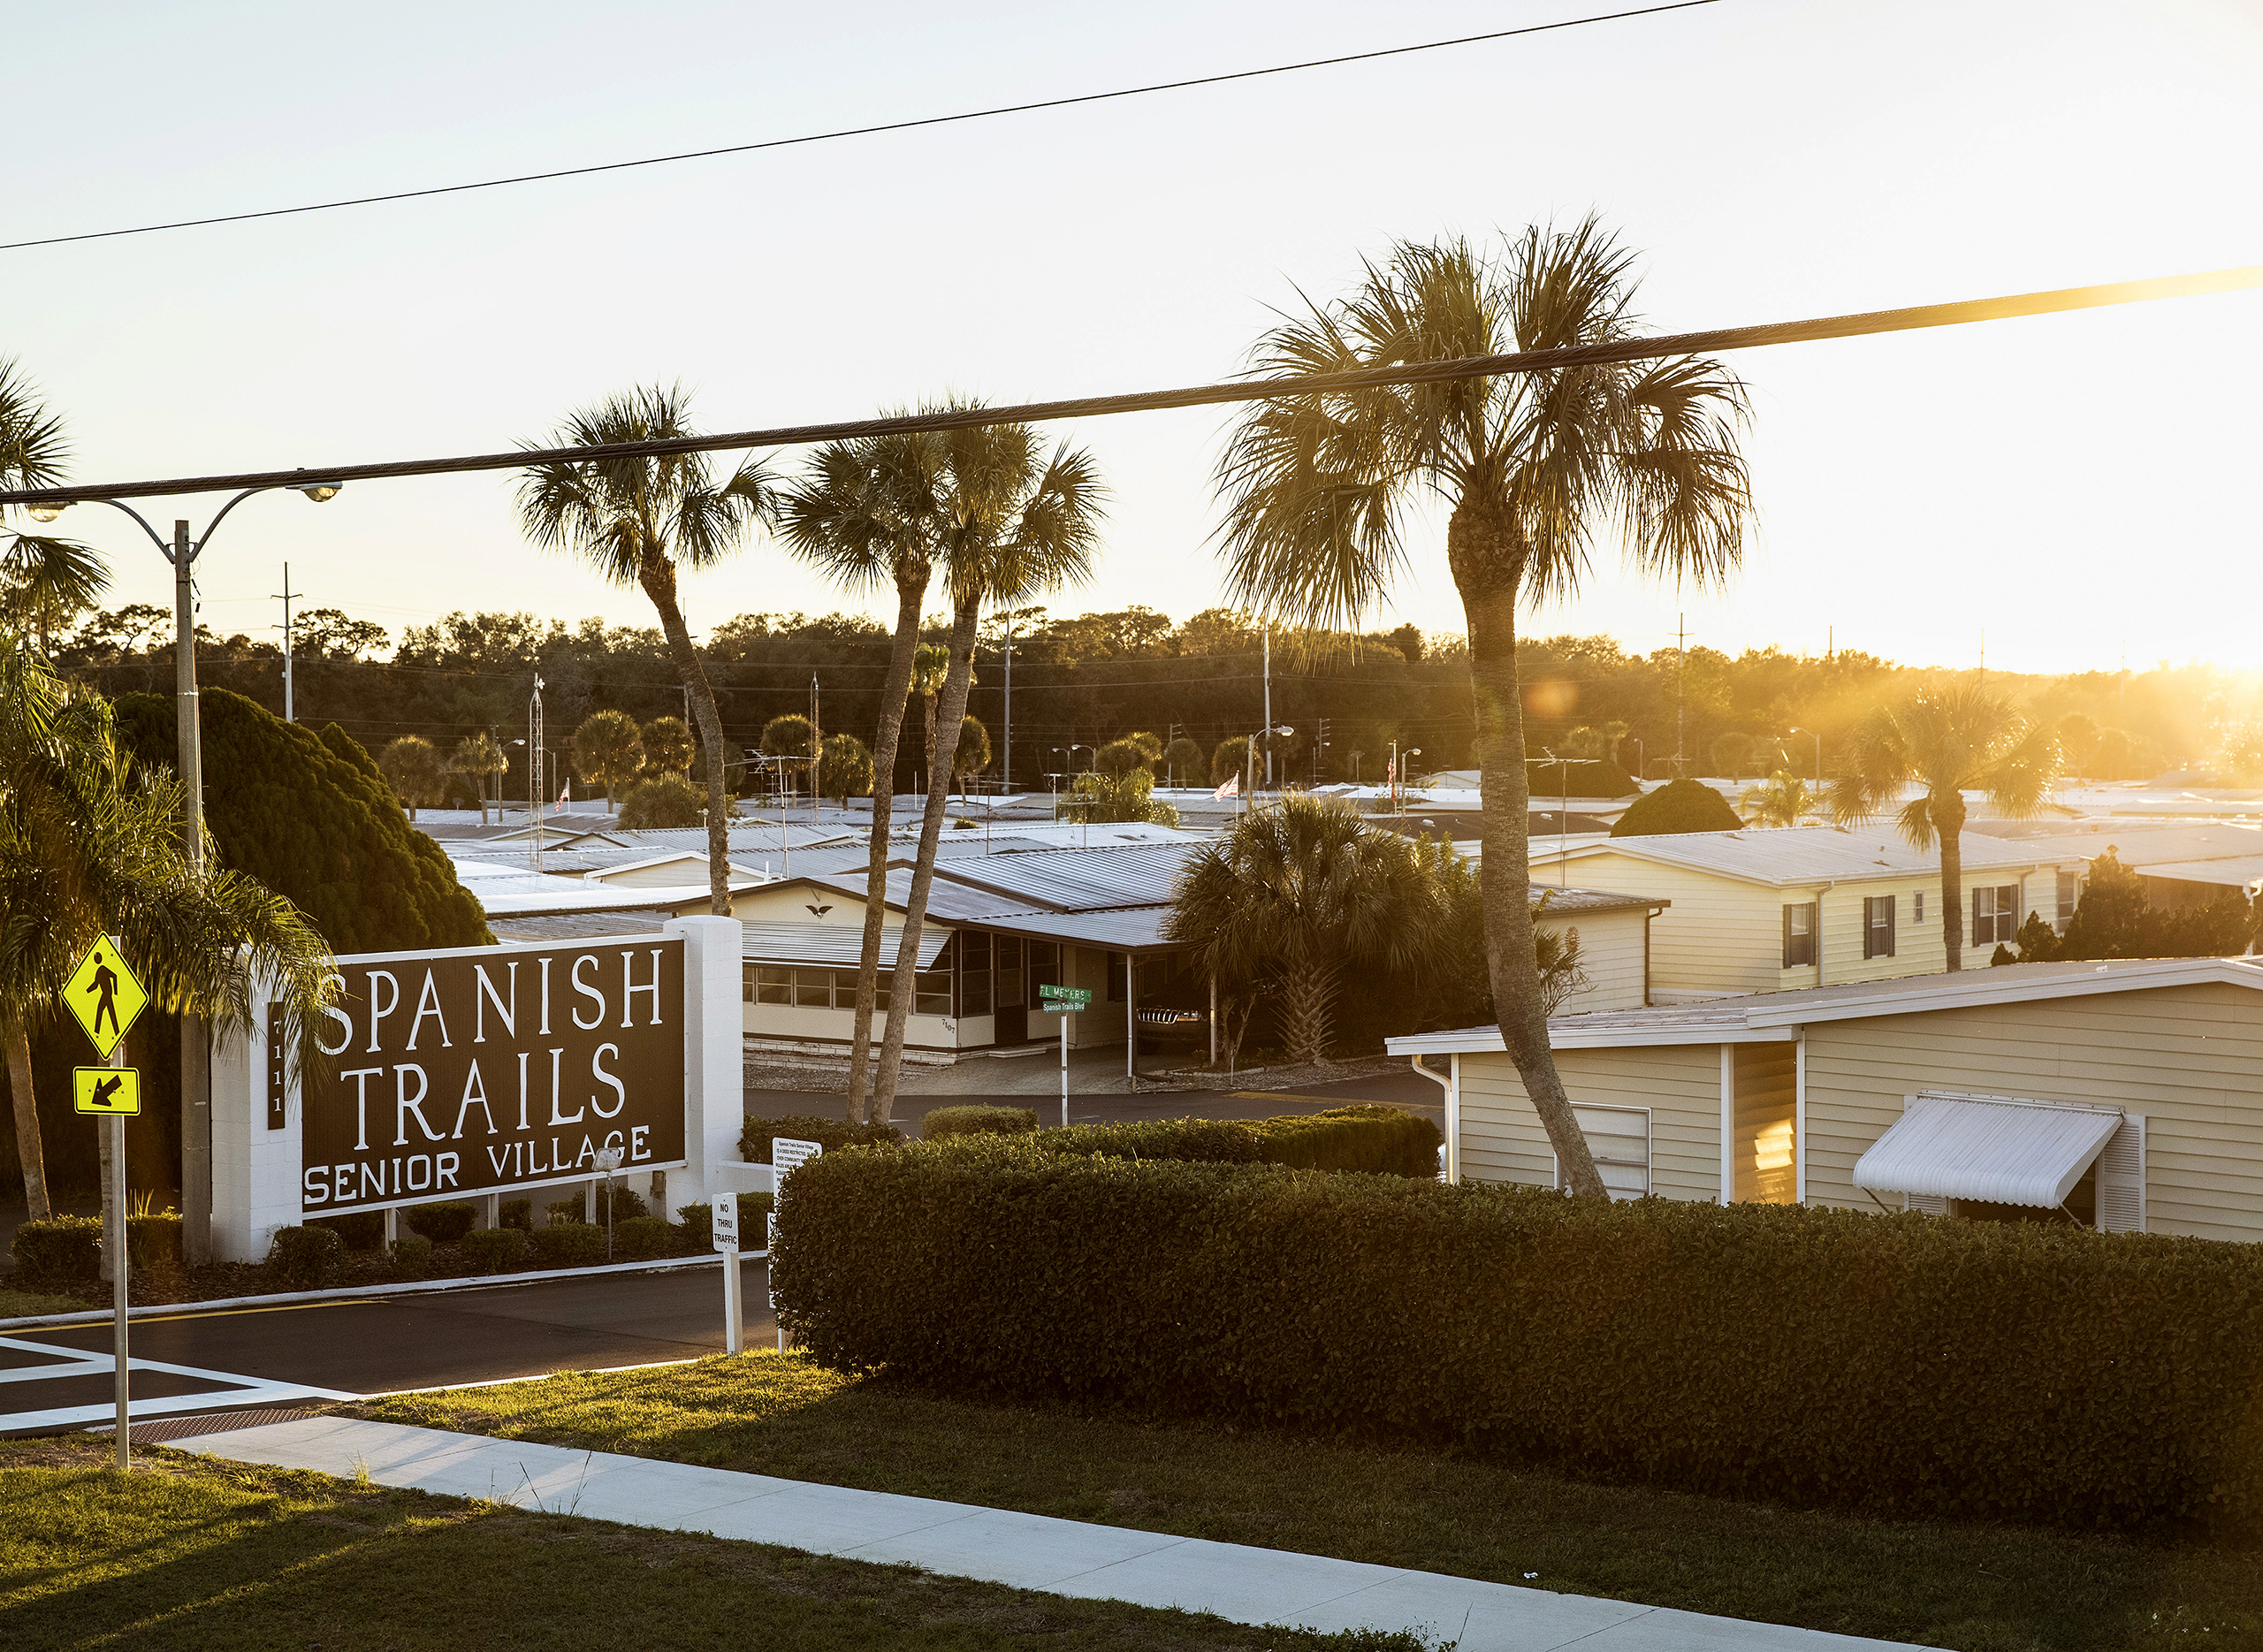 Spanish Trails is among more than 700 Florida trailer parks owned by their residents.